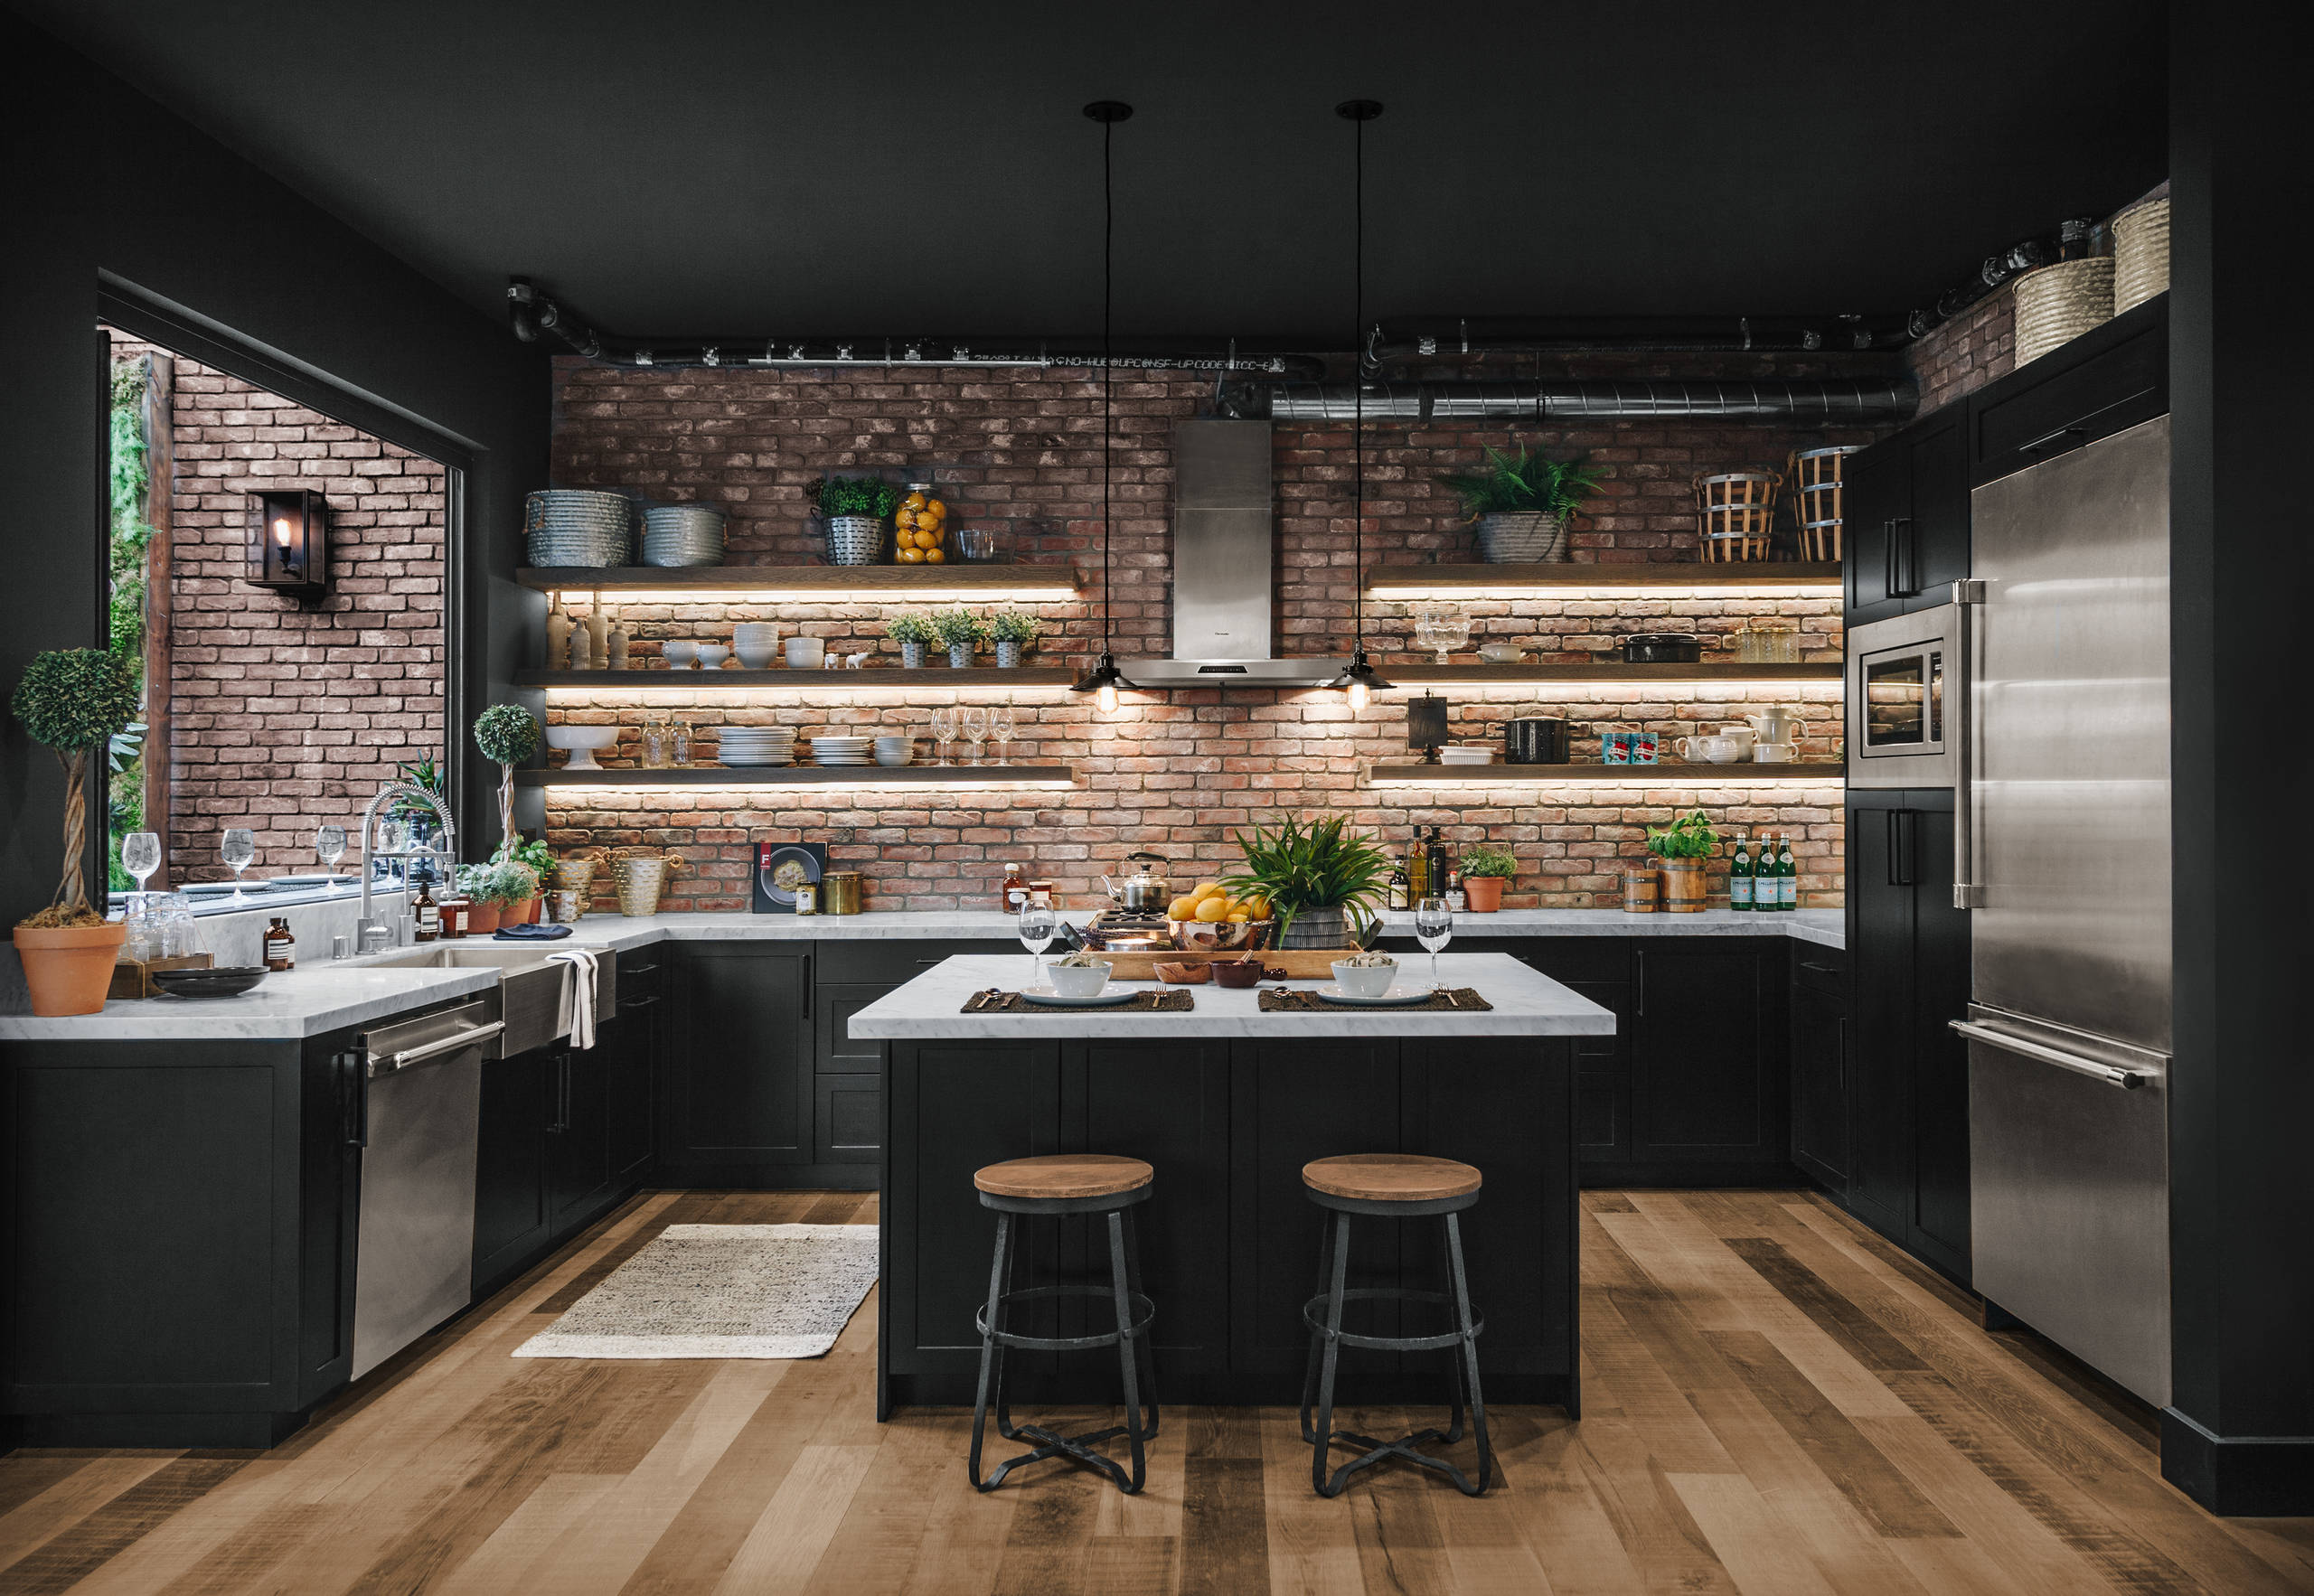 Image of: 75 Beautiful Kitchen With Brick Backsplash Pictures Ideas November 2020 Houzz